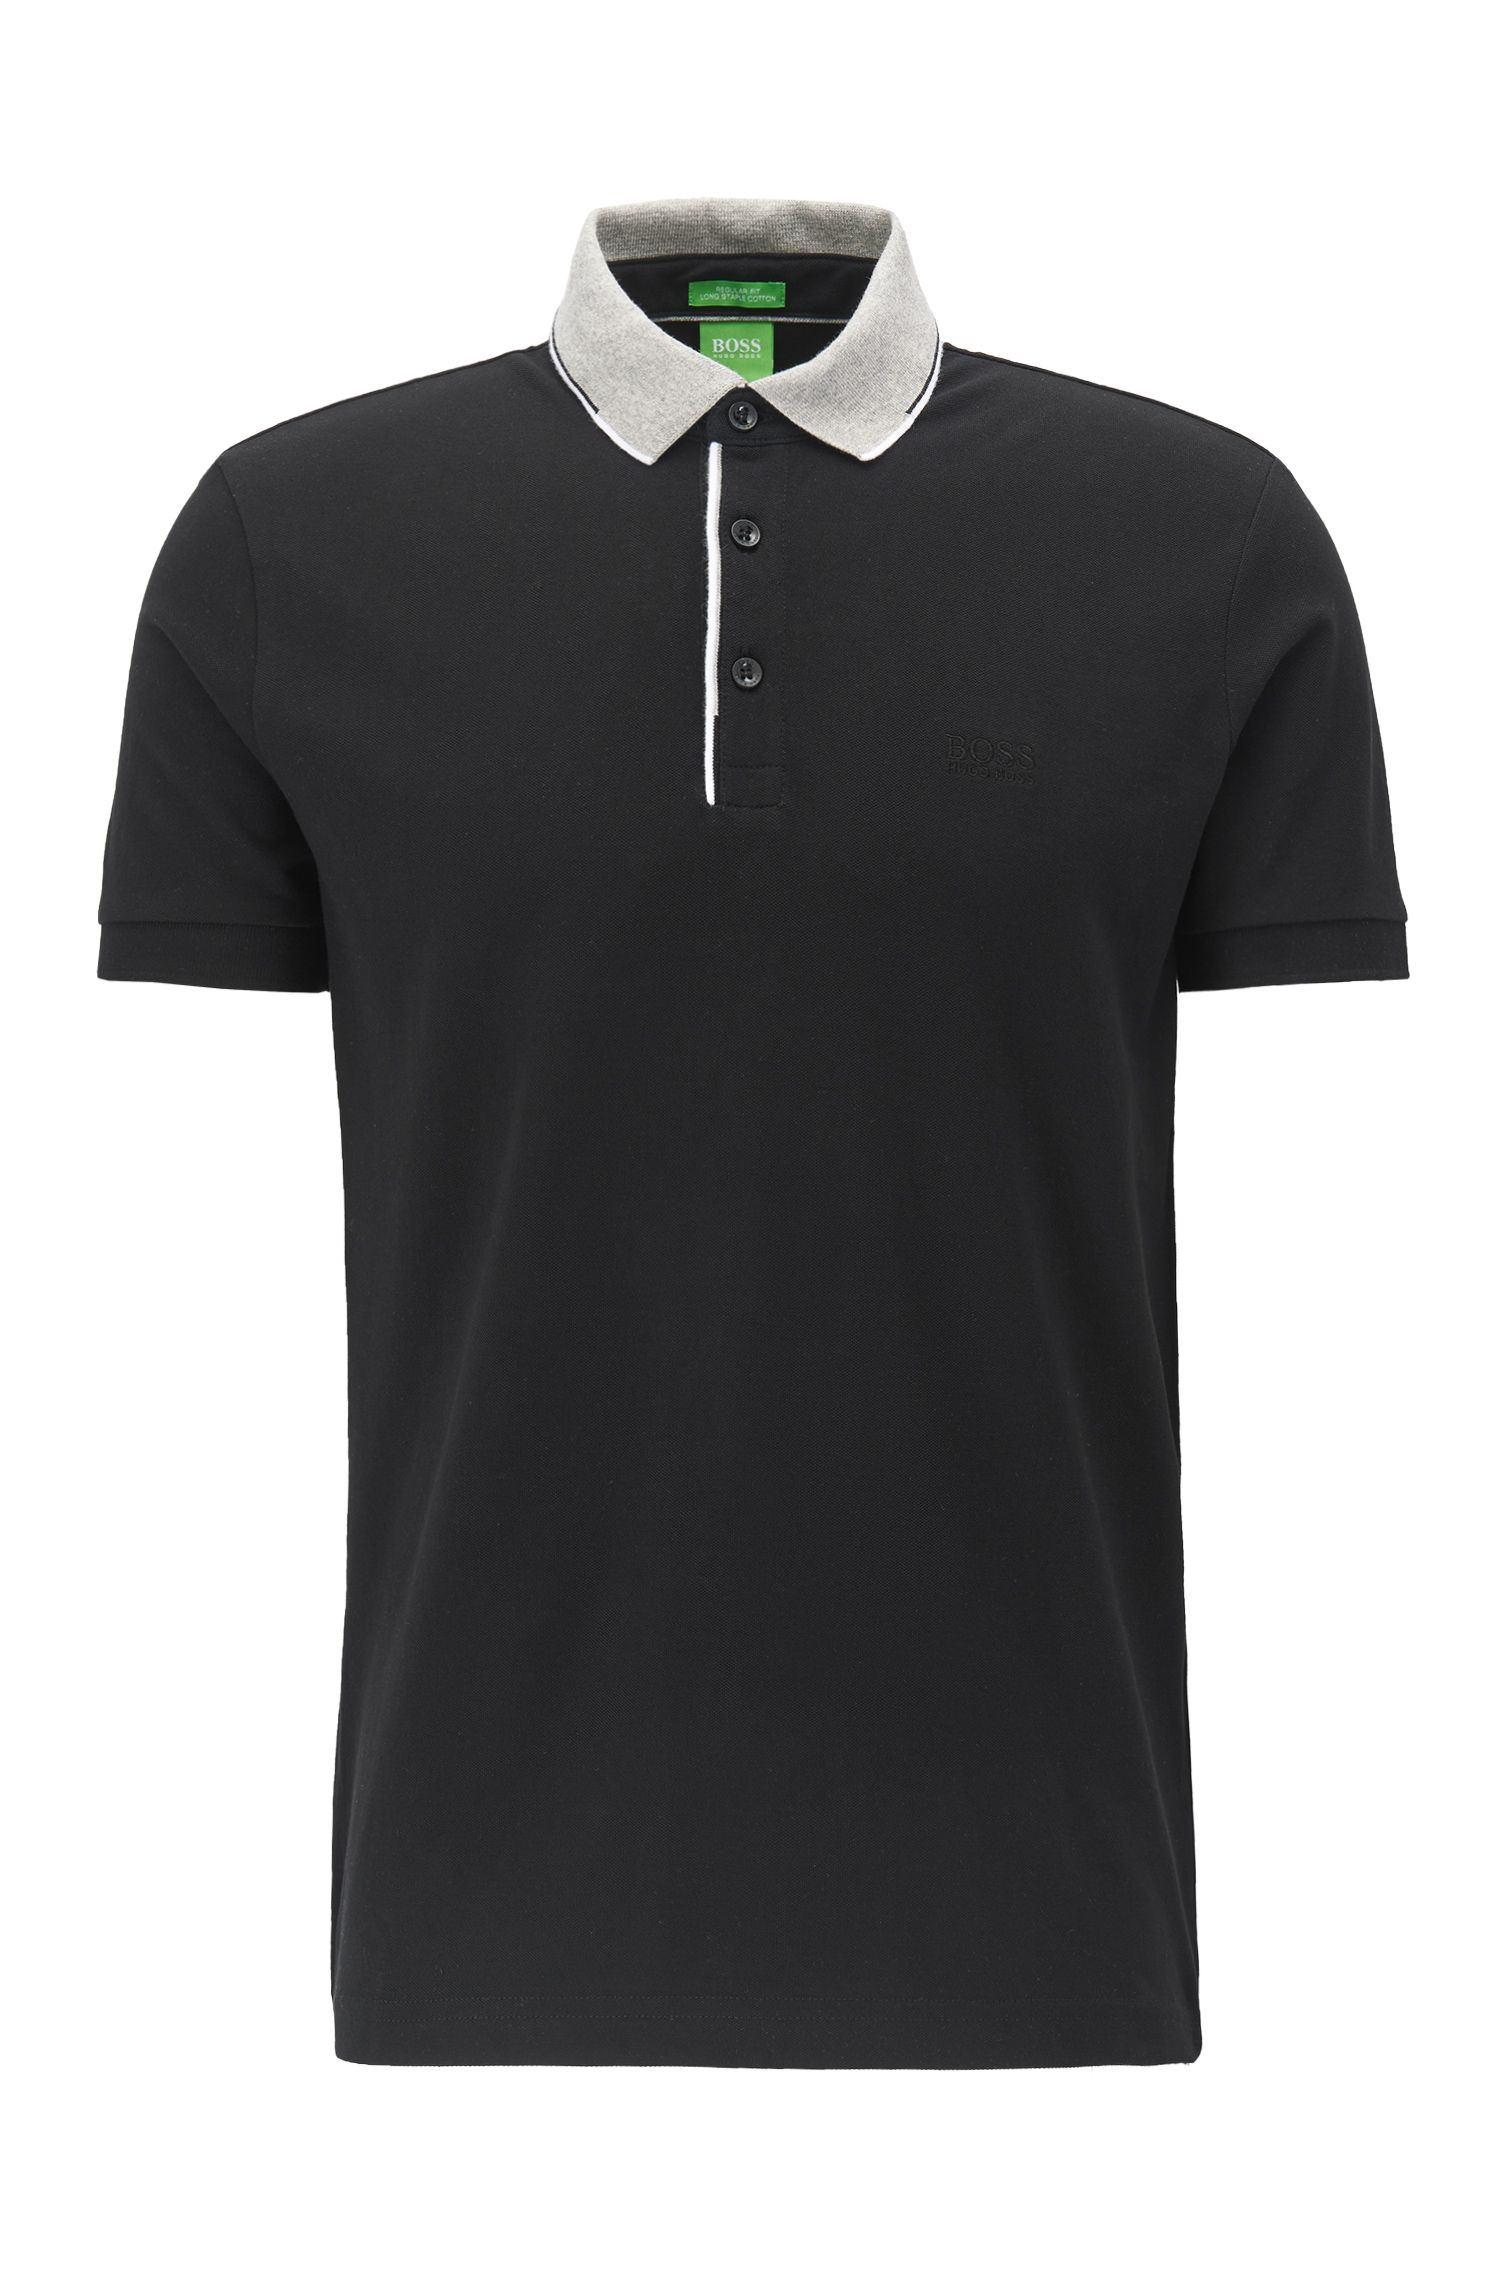 Regular fit cotton piqué polo shirt with contrast collar